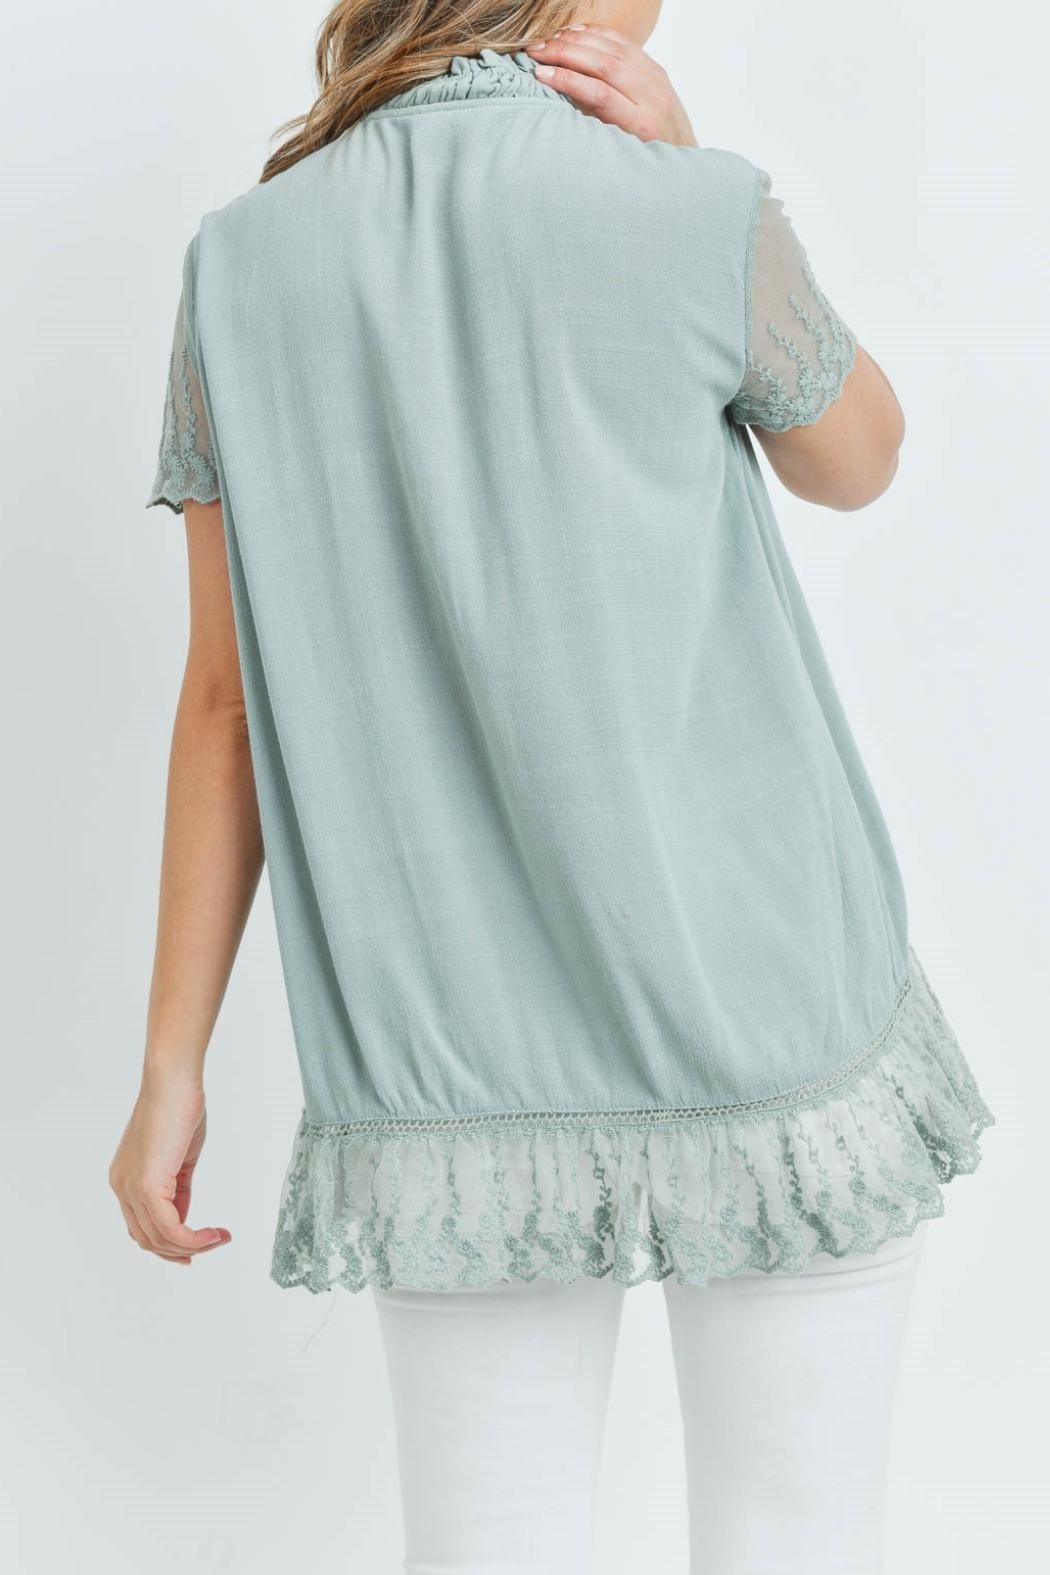 L Love Sage Lace Top - Back Cropped Image